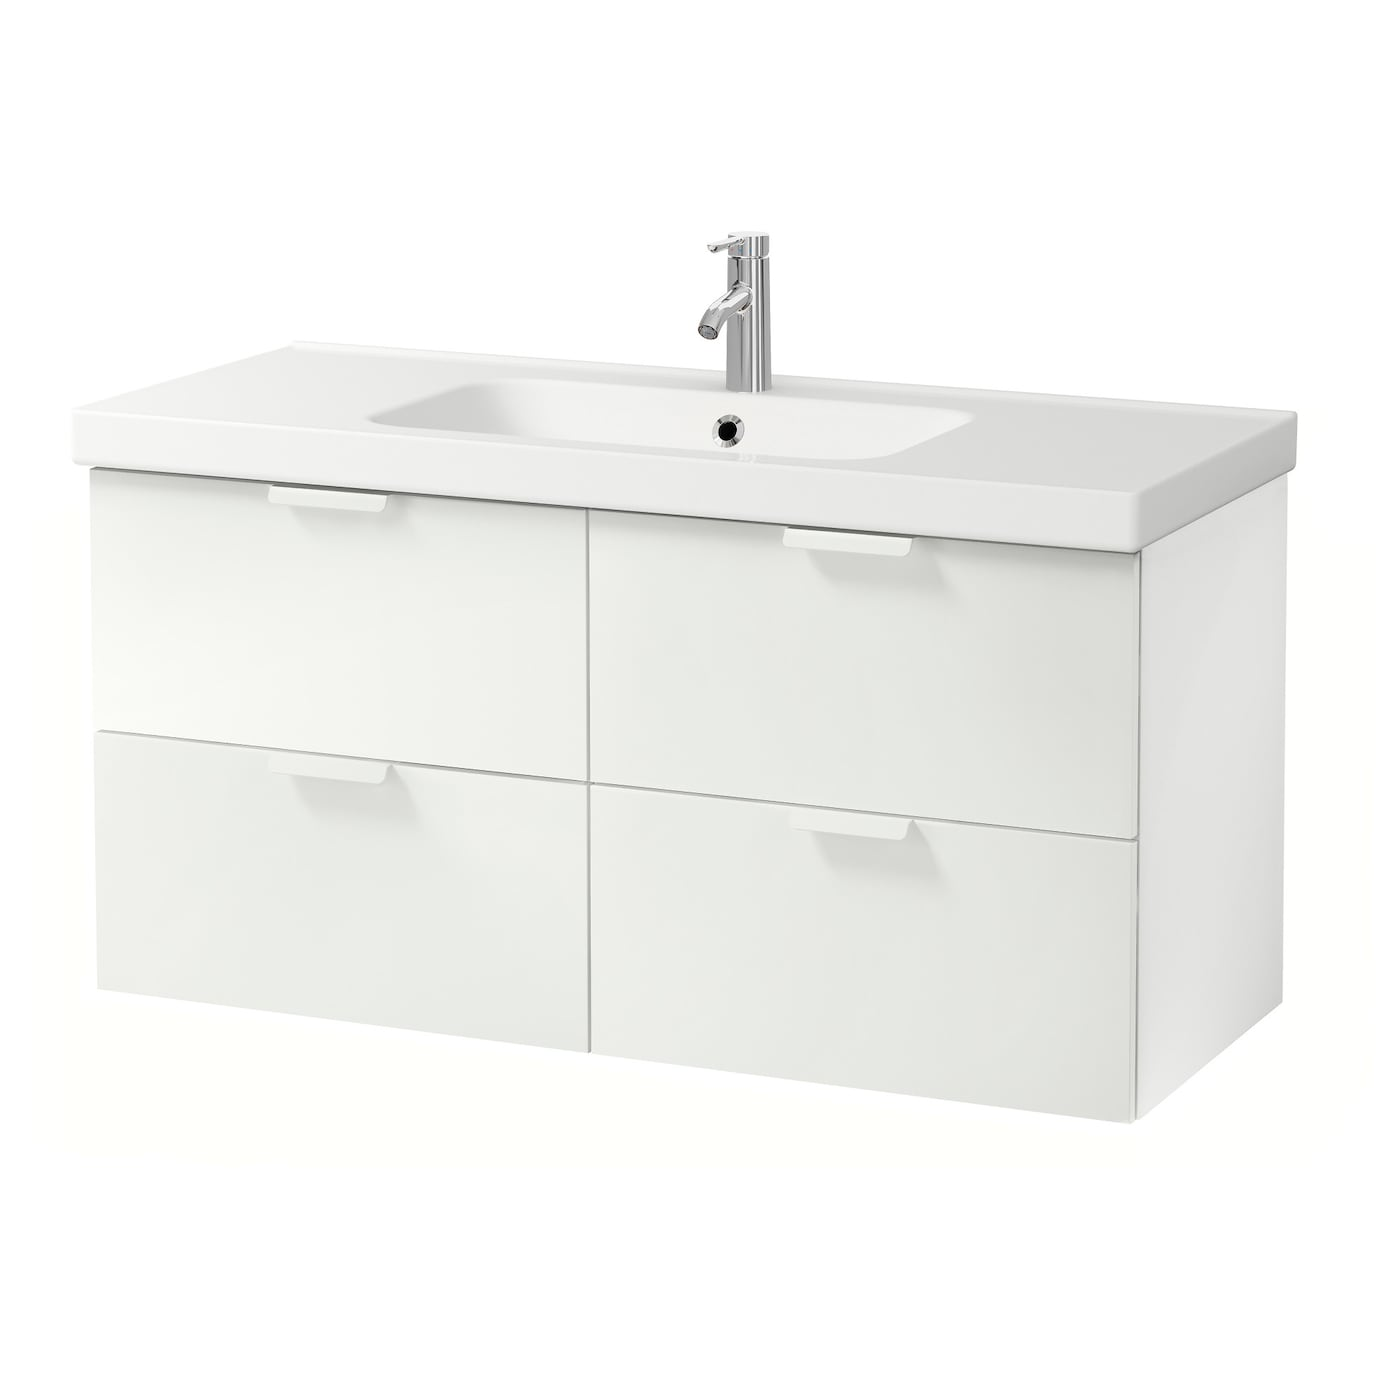 Odensvik godmorgon meuble lavabo 4tir blanc 120x49x64 cm for Lavabo plus meuble